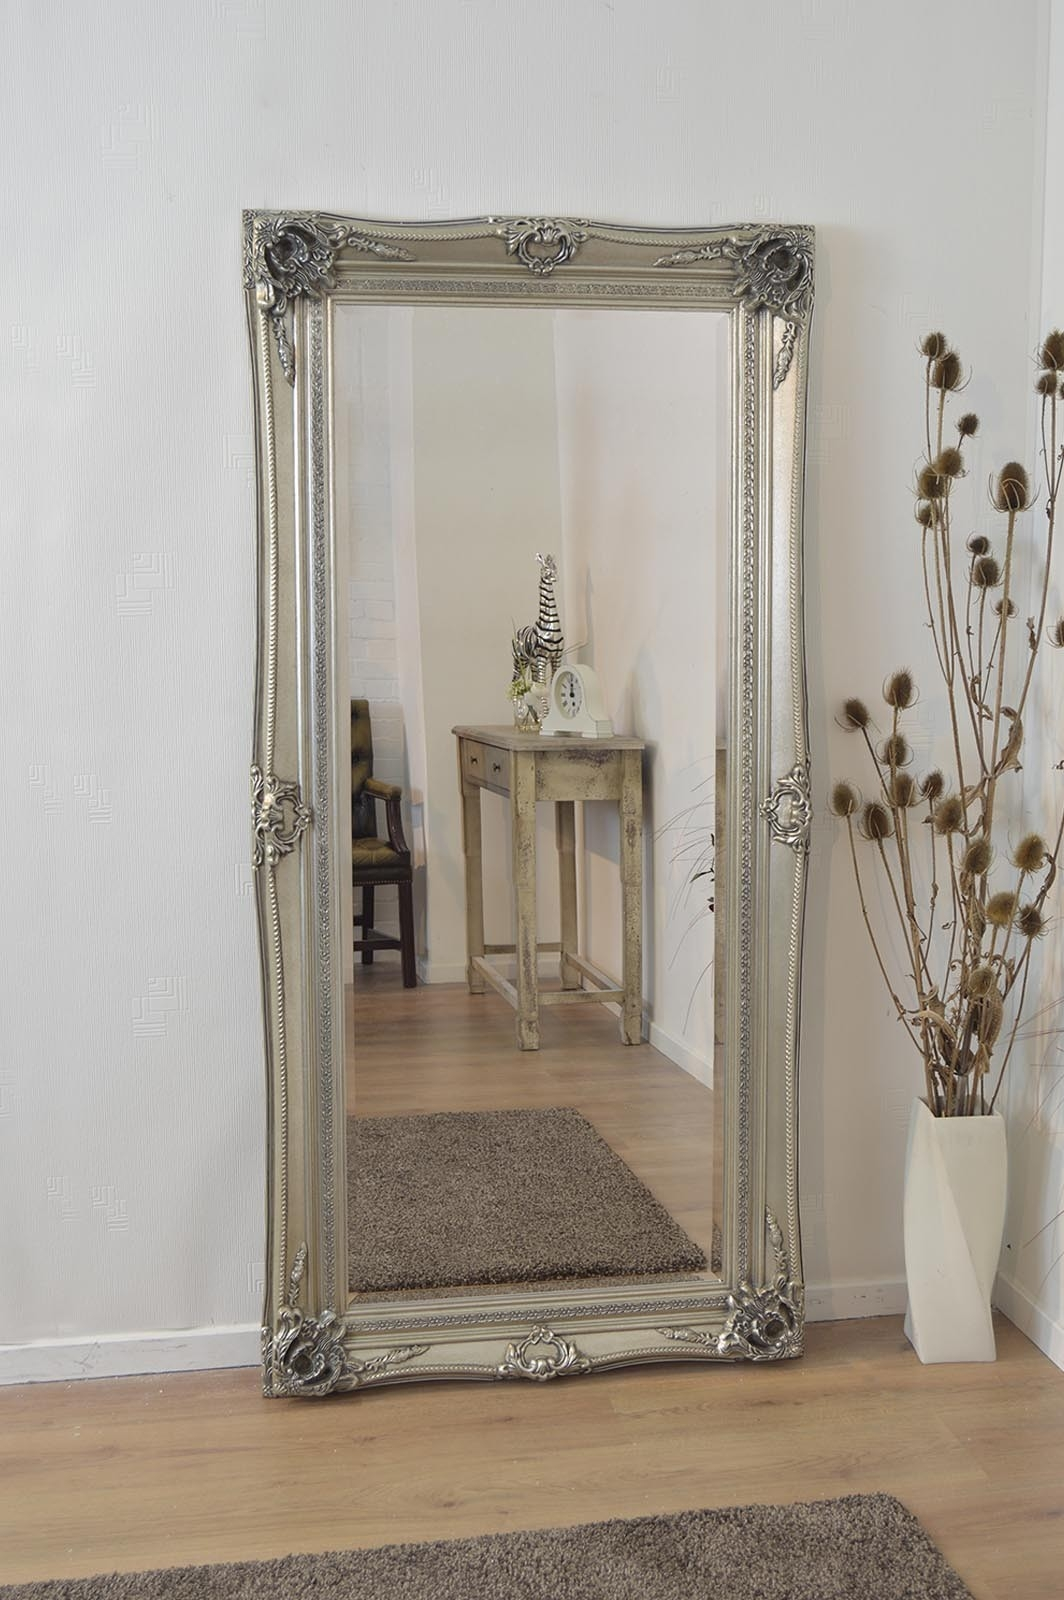 Classic Impression On Antique Wall Mirrors Vwho Inside Vintage Shabby Chic Mirrors (Image 5 of 15)